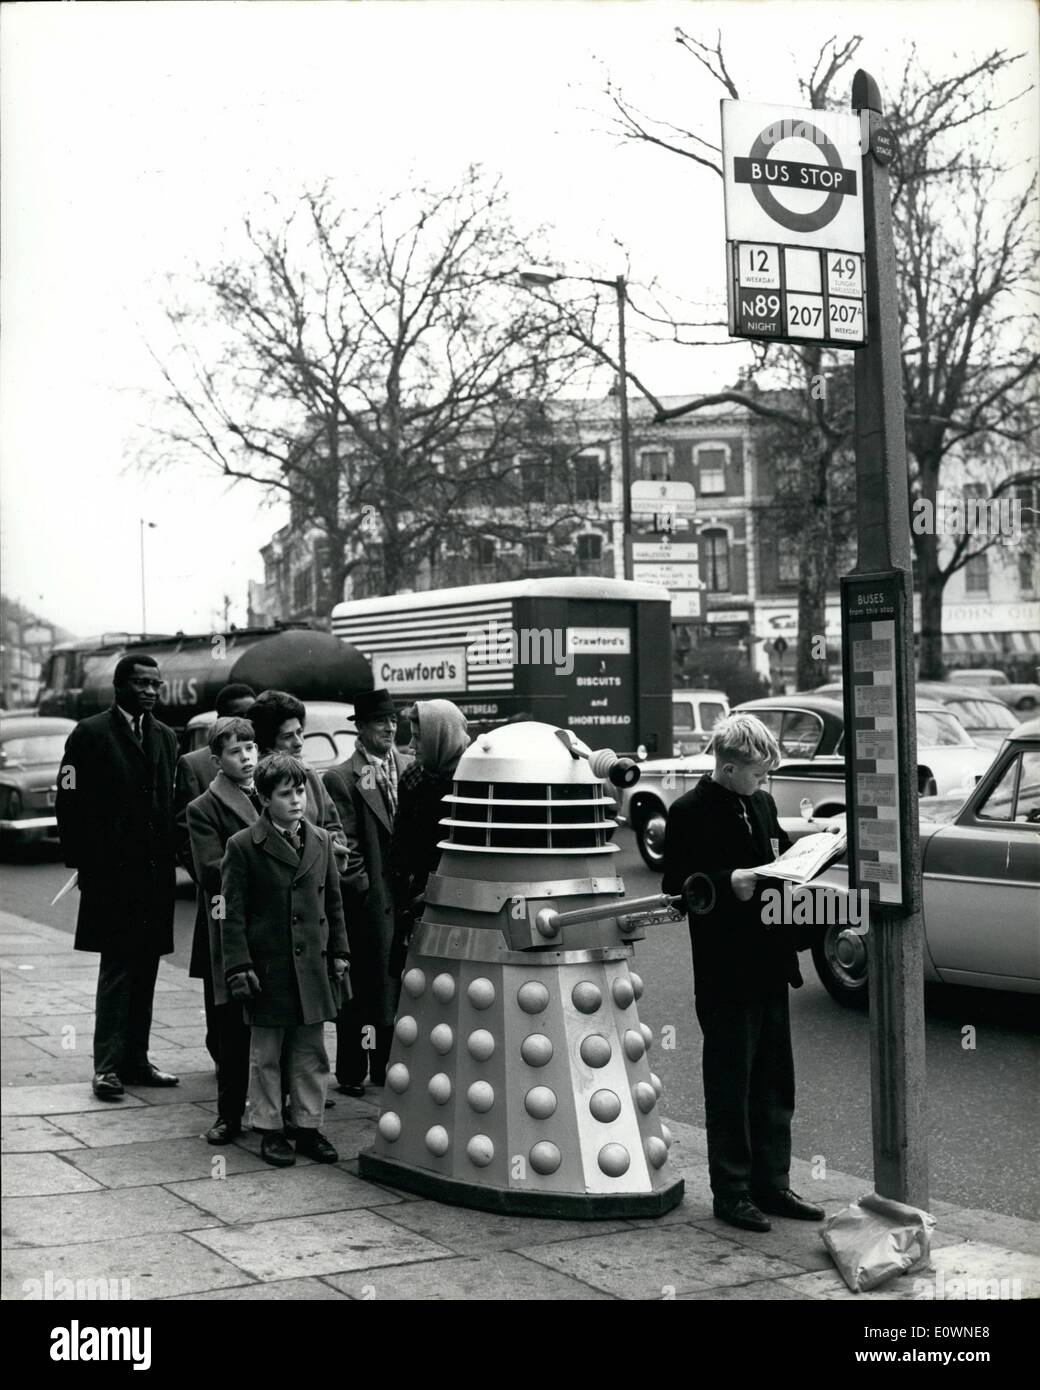 Dec. 12, 1963 - Space vehicles in Shepherd's bush.: B.B.C. Television's ''Dr. Who'' programme on Saturdays, in putting out an edition this week that features some space vehicles which are known as ''Daleks''. These vehicles seemed to have somehow got loose, and were to be seen this morning in the street at Shepherd's Bush, in London. Photo shows A ''Dalek'' lines up at a bus stop, unnoticed by other people in the queue. - Stock Image